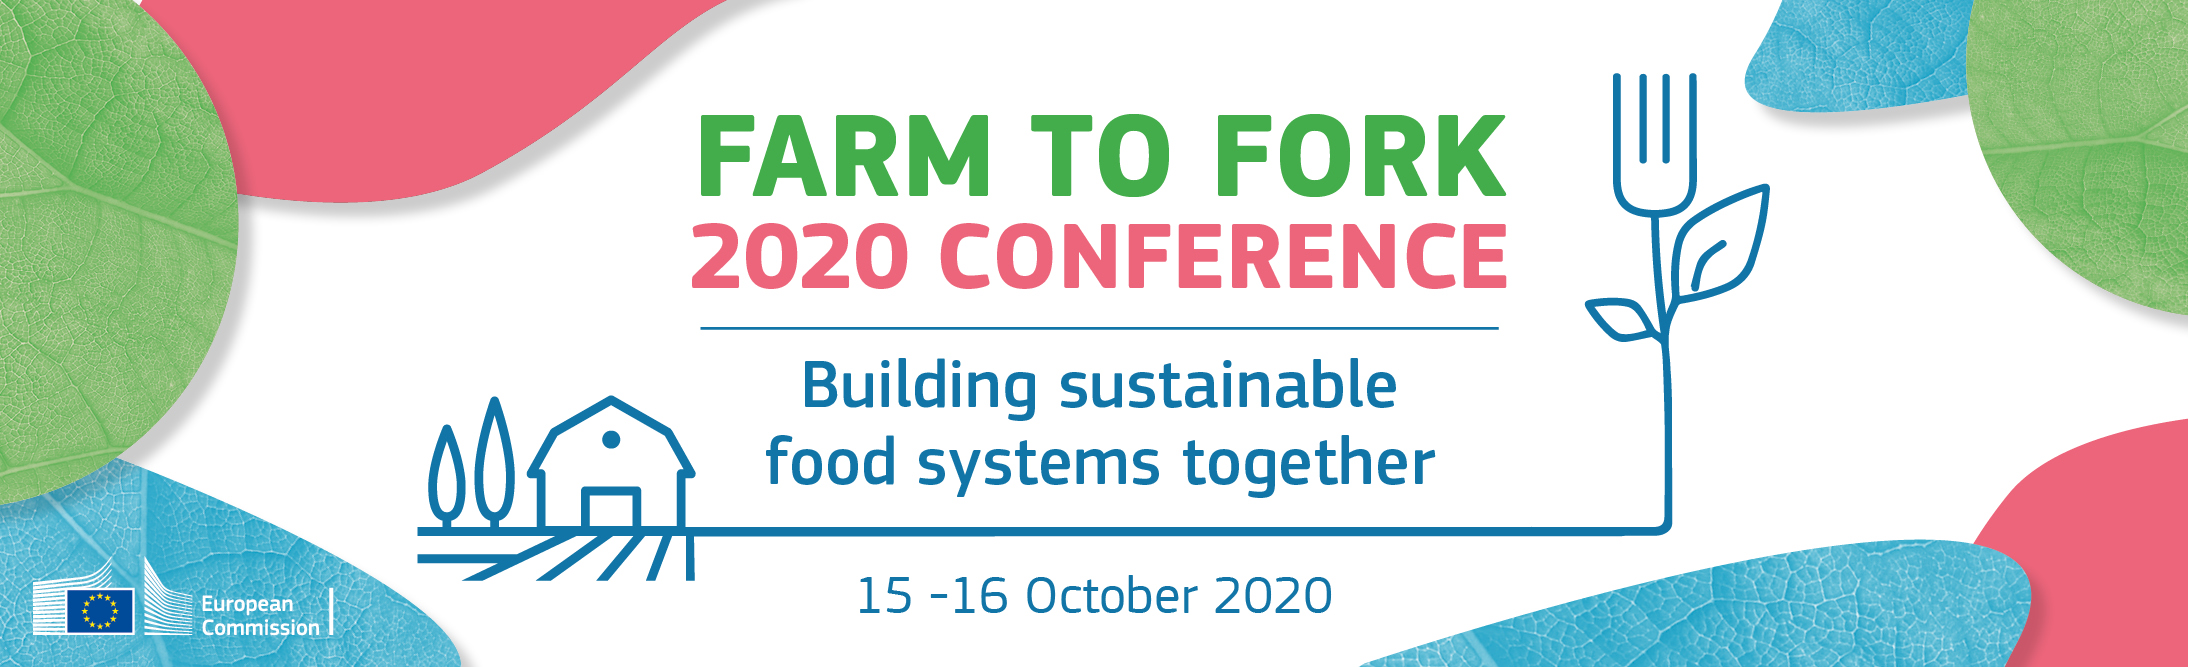 Eu Commission Farm To Fork 2020 Conference Building Sustainable Food Systems Together Agroecology Europe